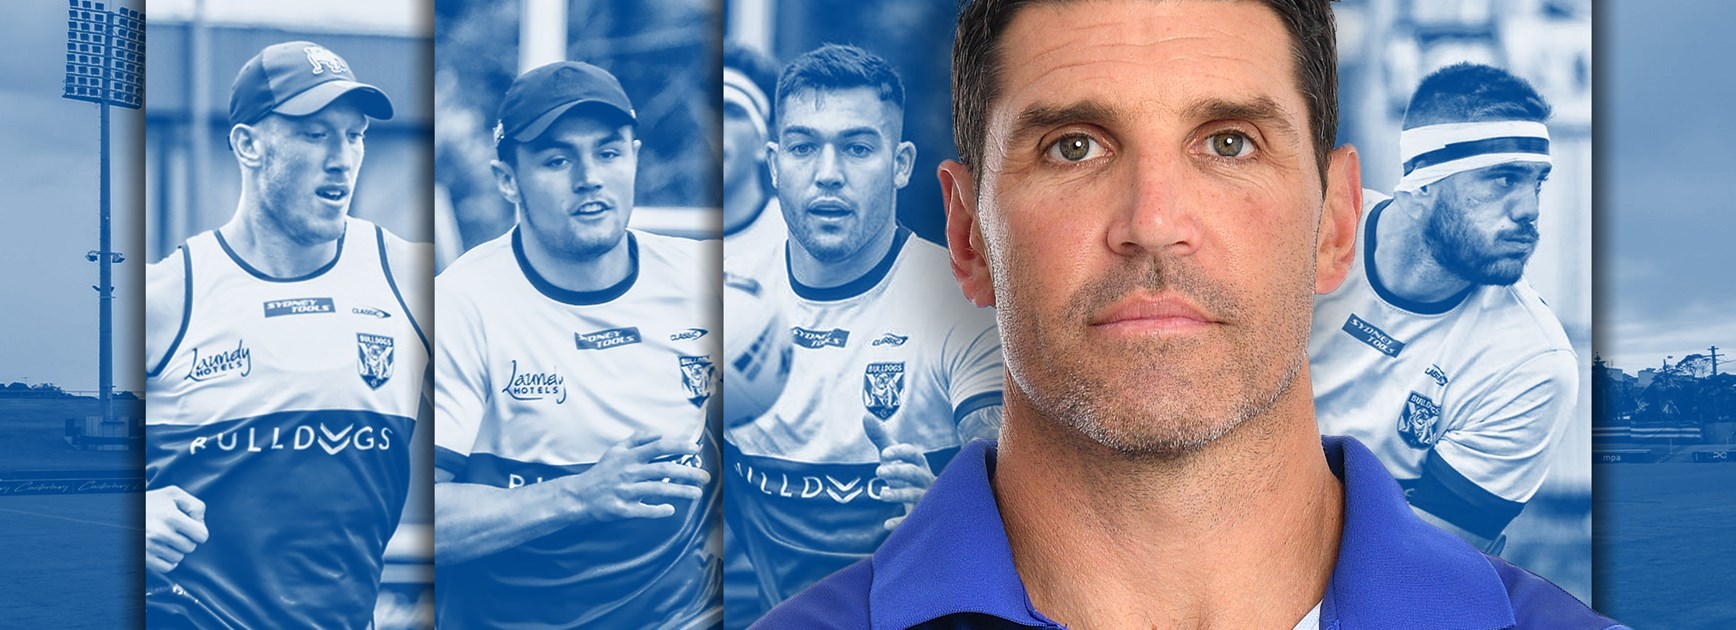 'People want to play for him': Inside Barrett's Bulldogs revolution